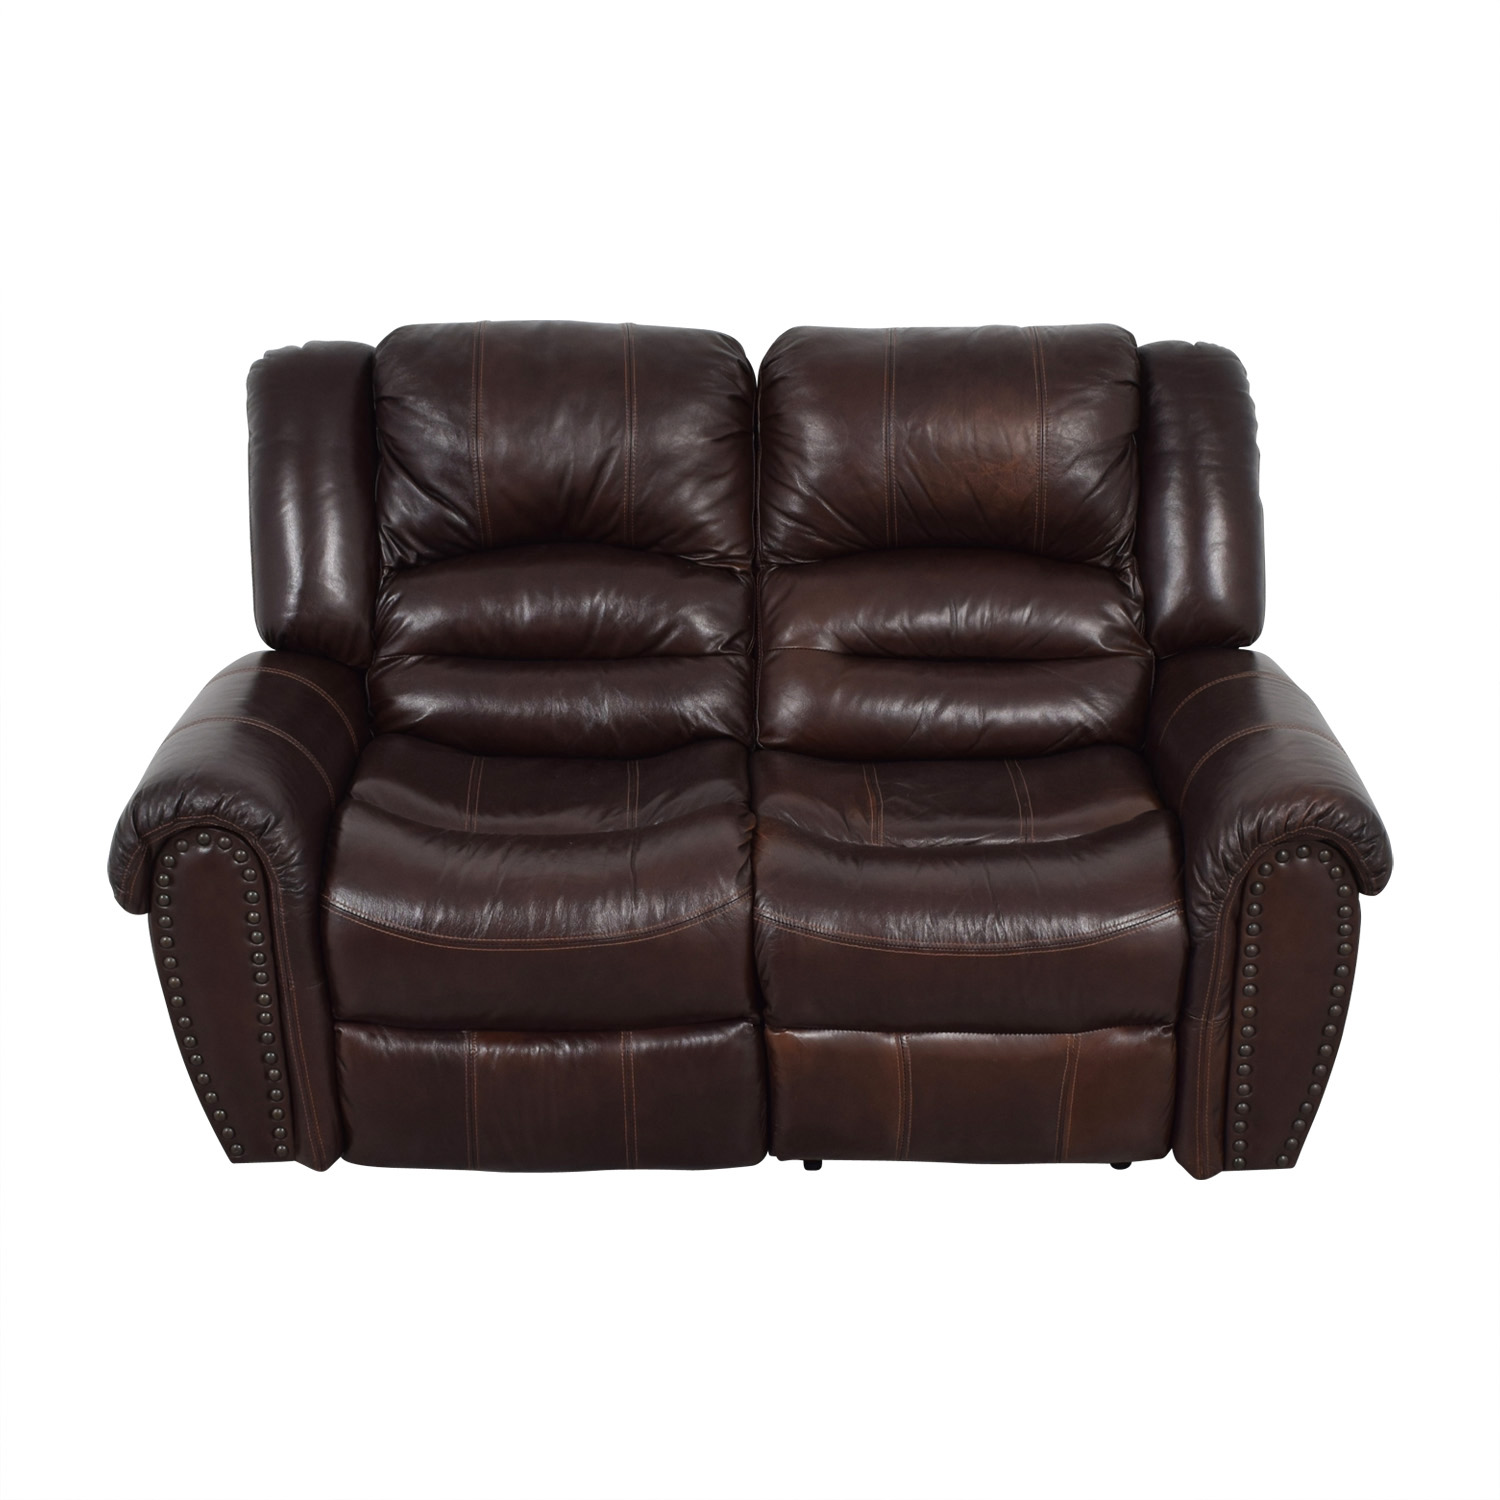 Raymour & Flanigan Raymour & Flanigan Brown Leather Double Reclining Loveseat second hand